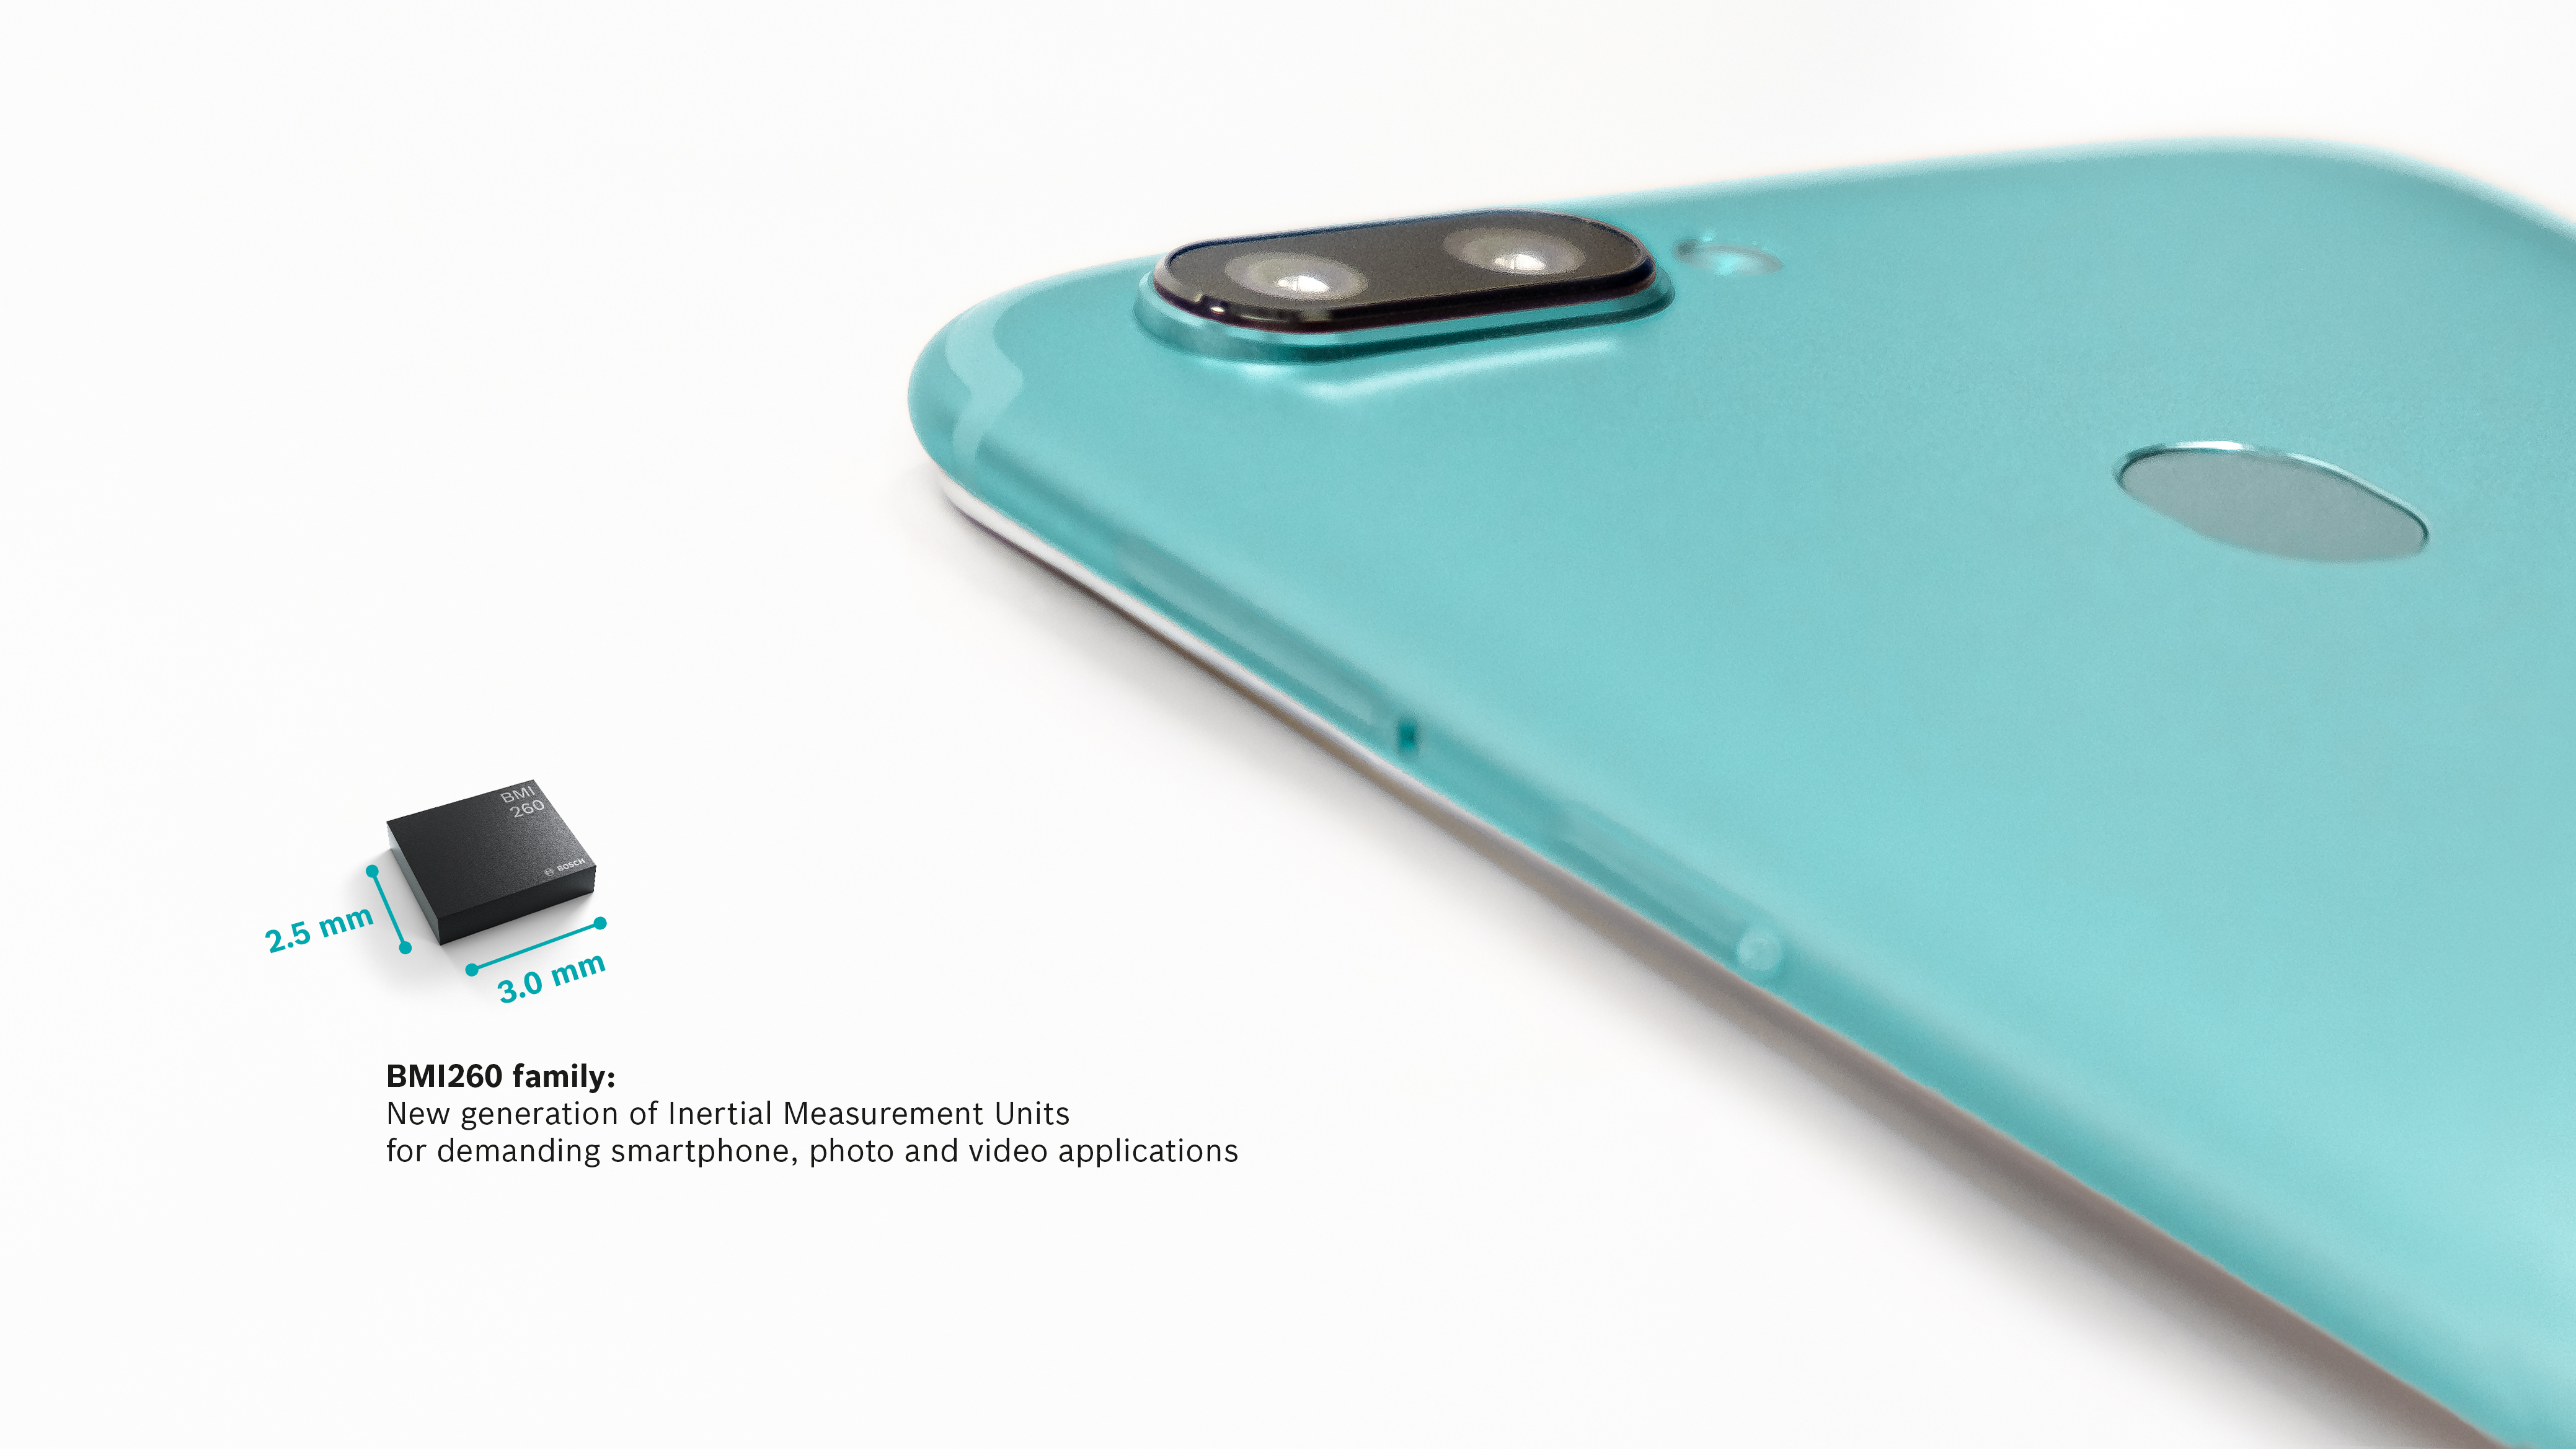 BMI260 family: new generation of IMUs optimized for smartphone applications